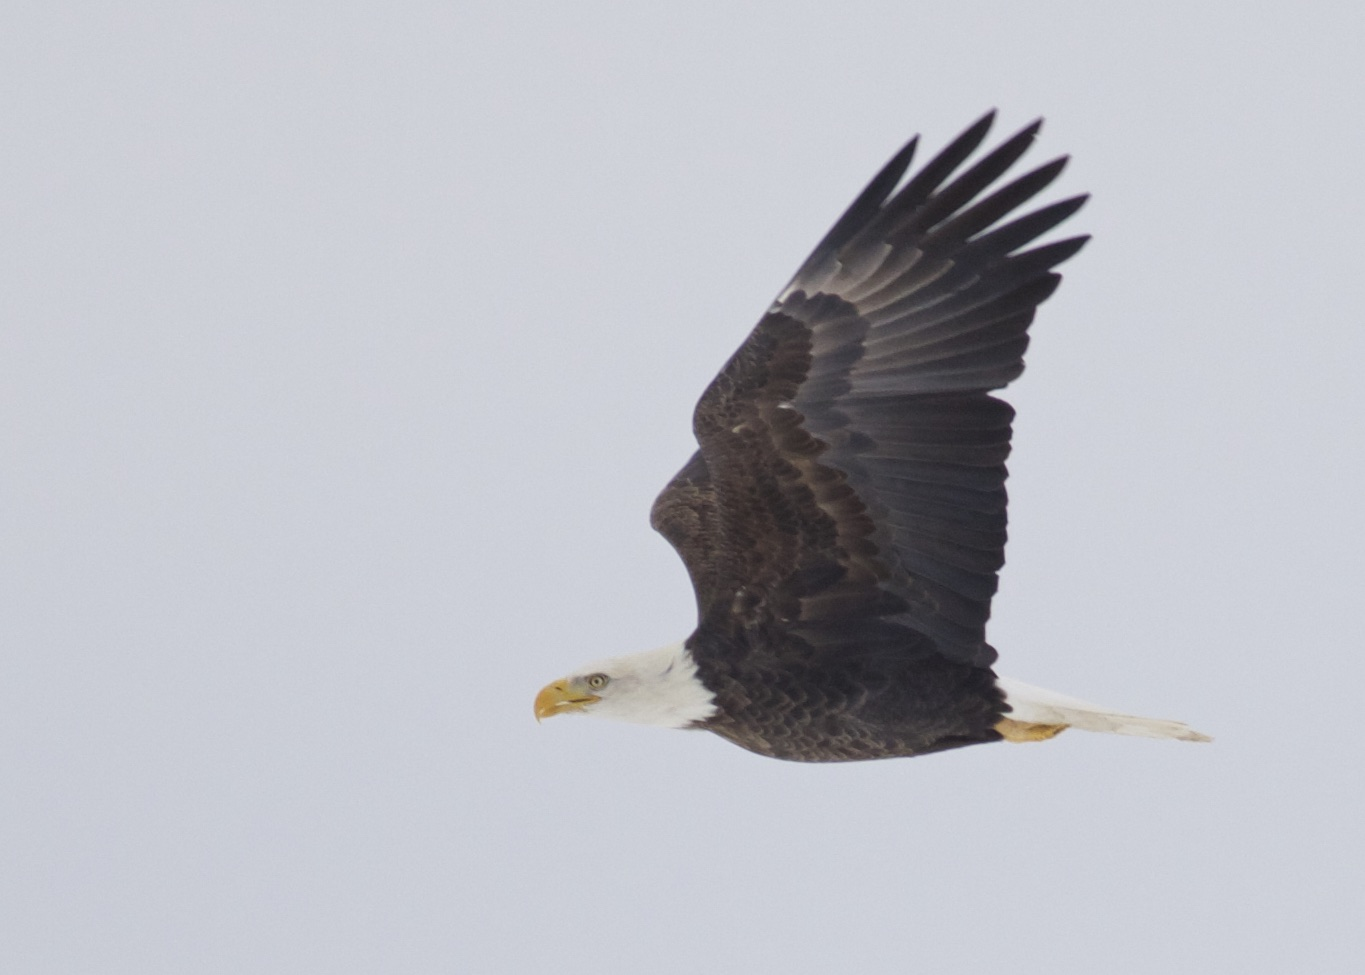 I seem to get an awful lot of over-exposed adult Bald Eagle photos. This one was just barely salvageable. Bald Eagle flying low over the black dirt, Orange County NY, 11/30/14.